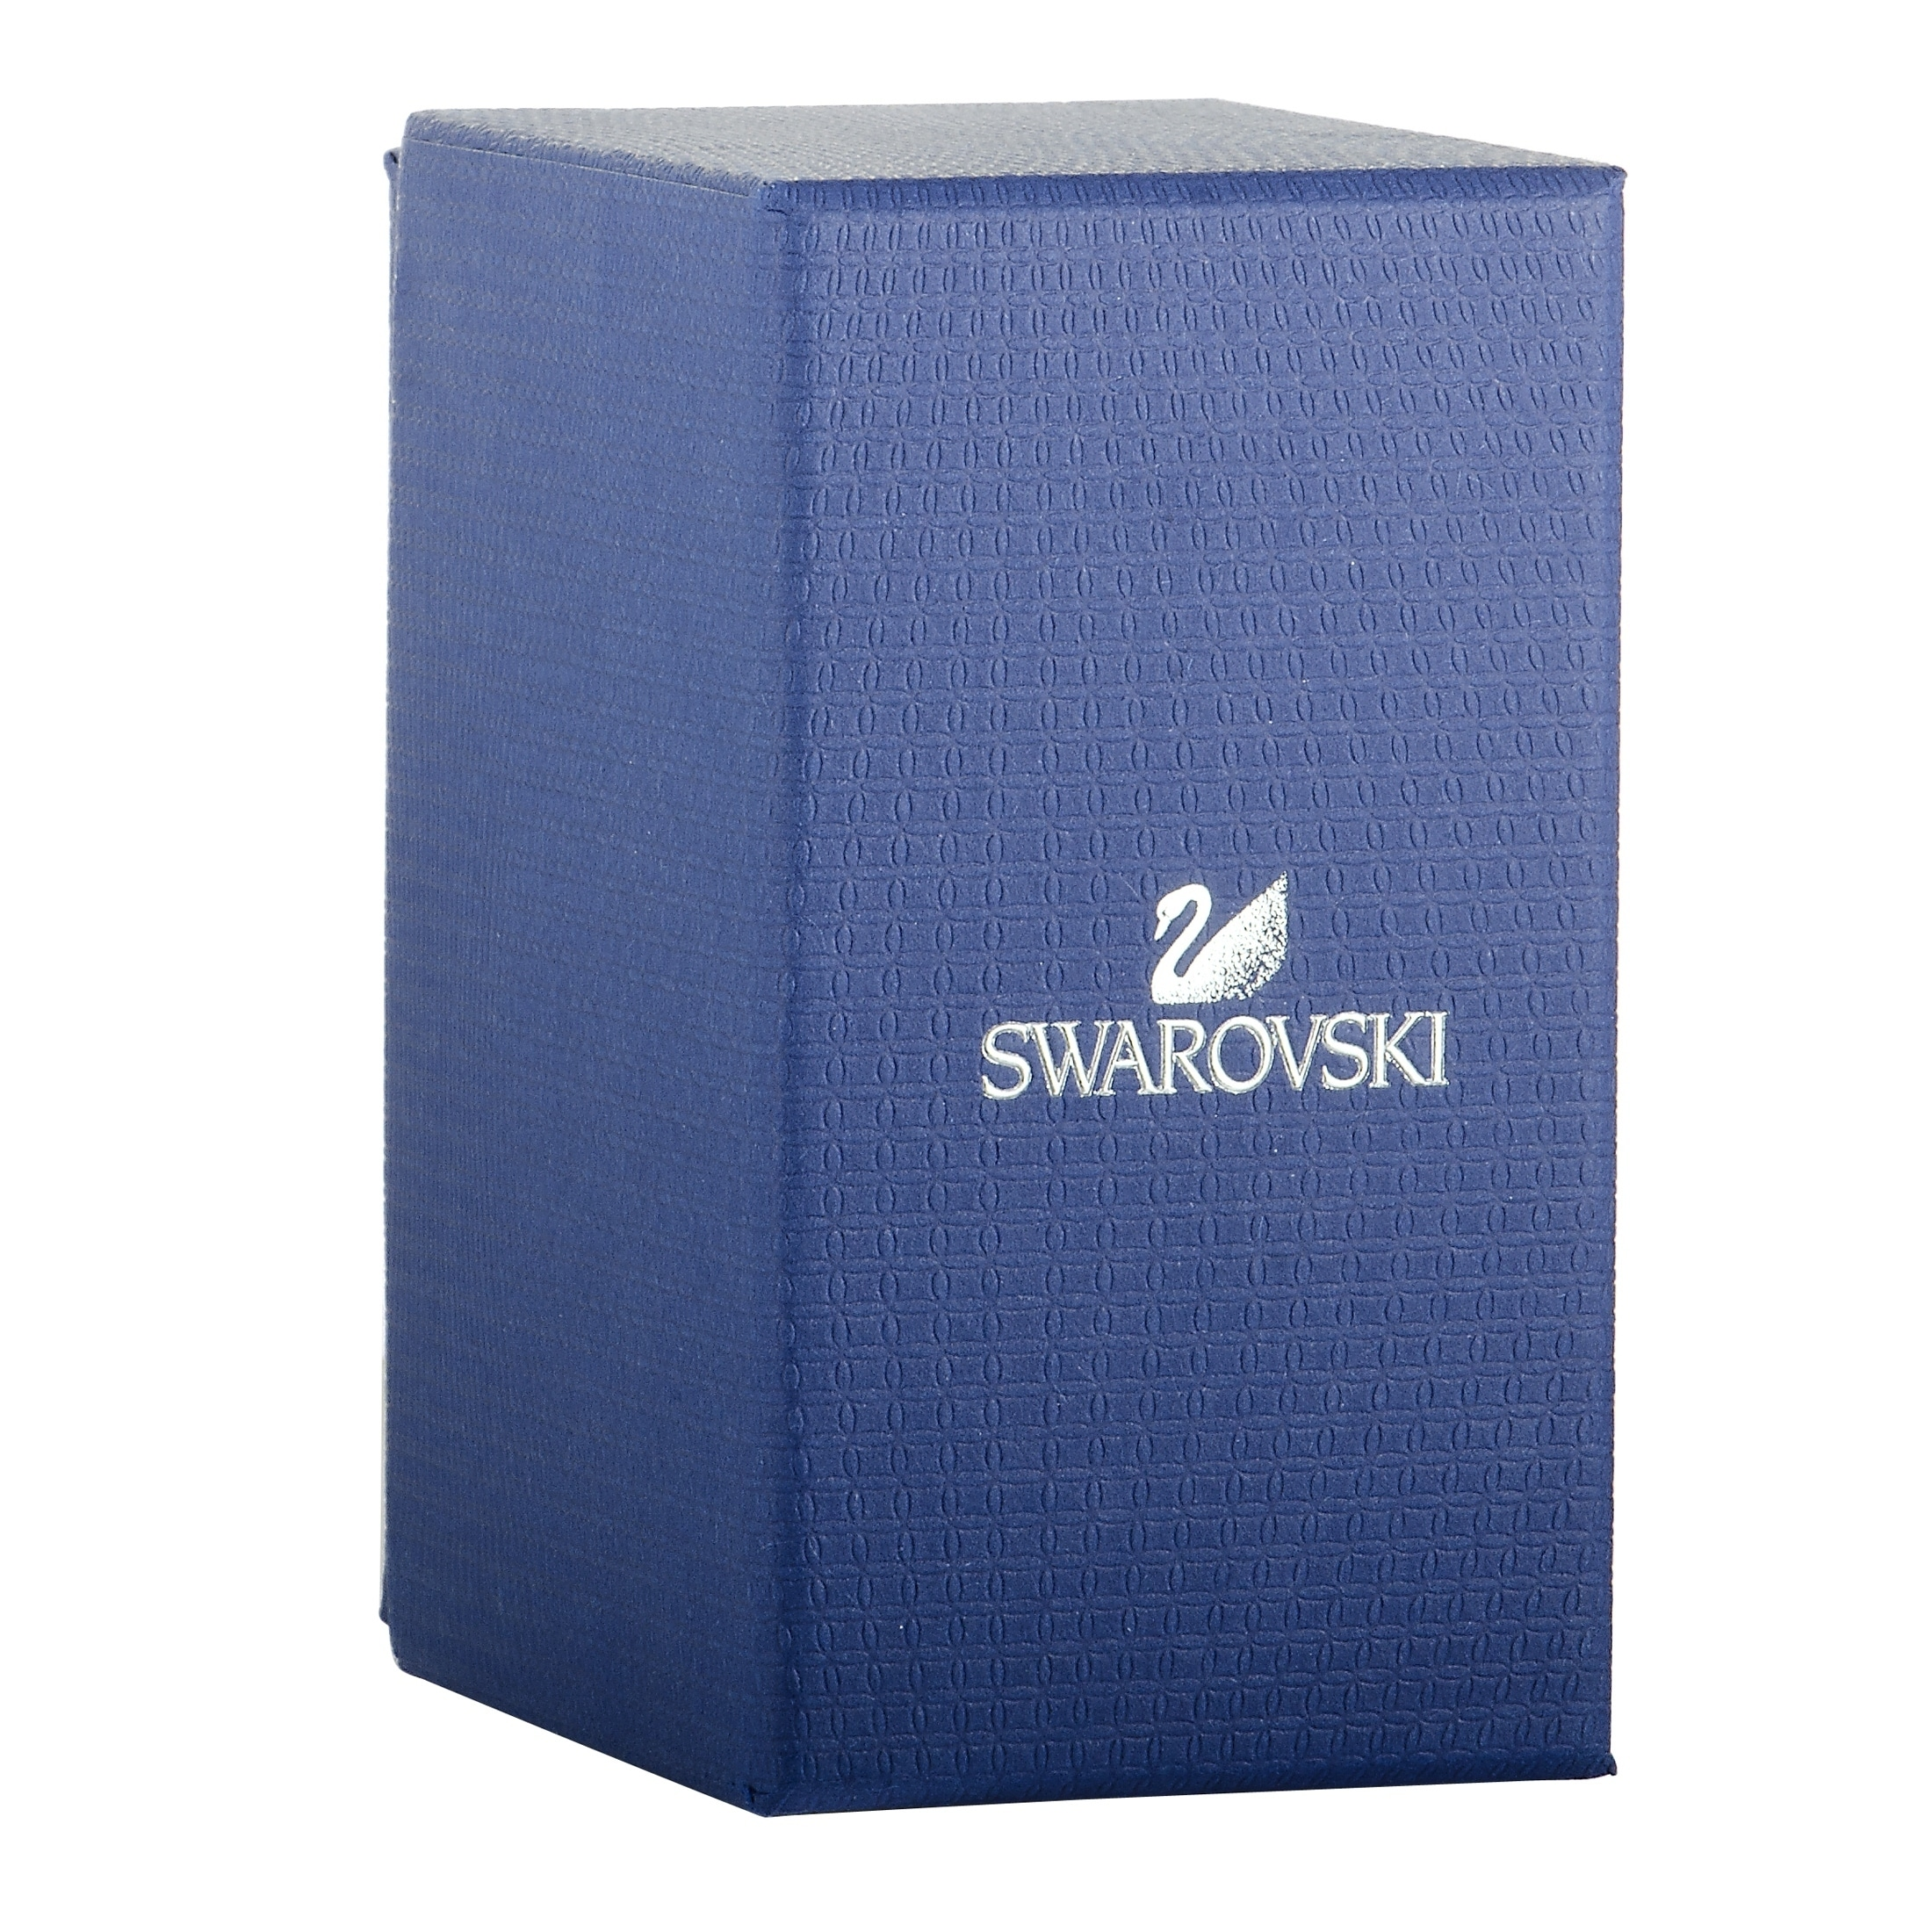 Swarovski 5258133 Swarovski Vittore Female White Rhodium bath